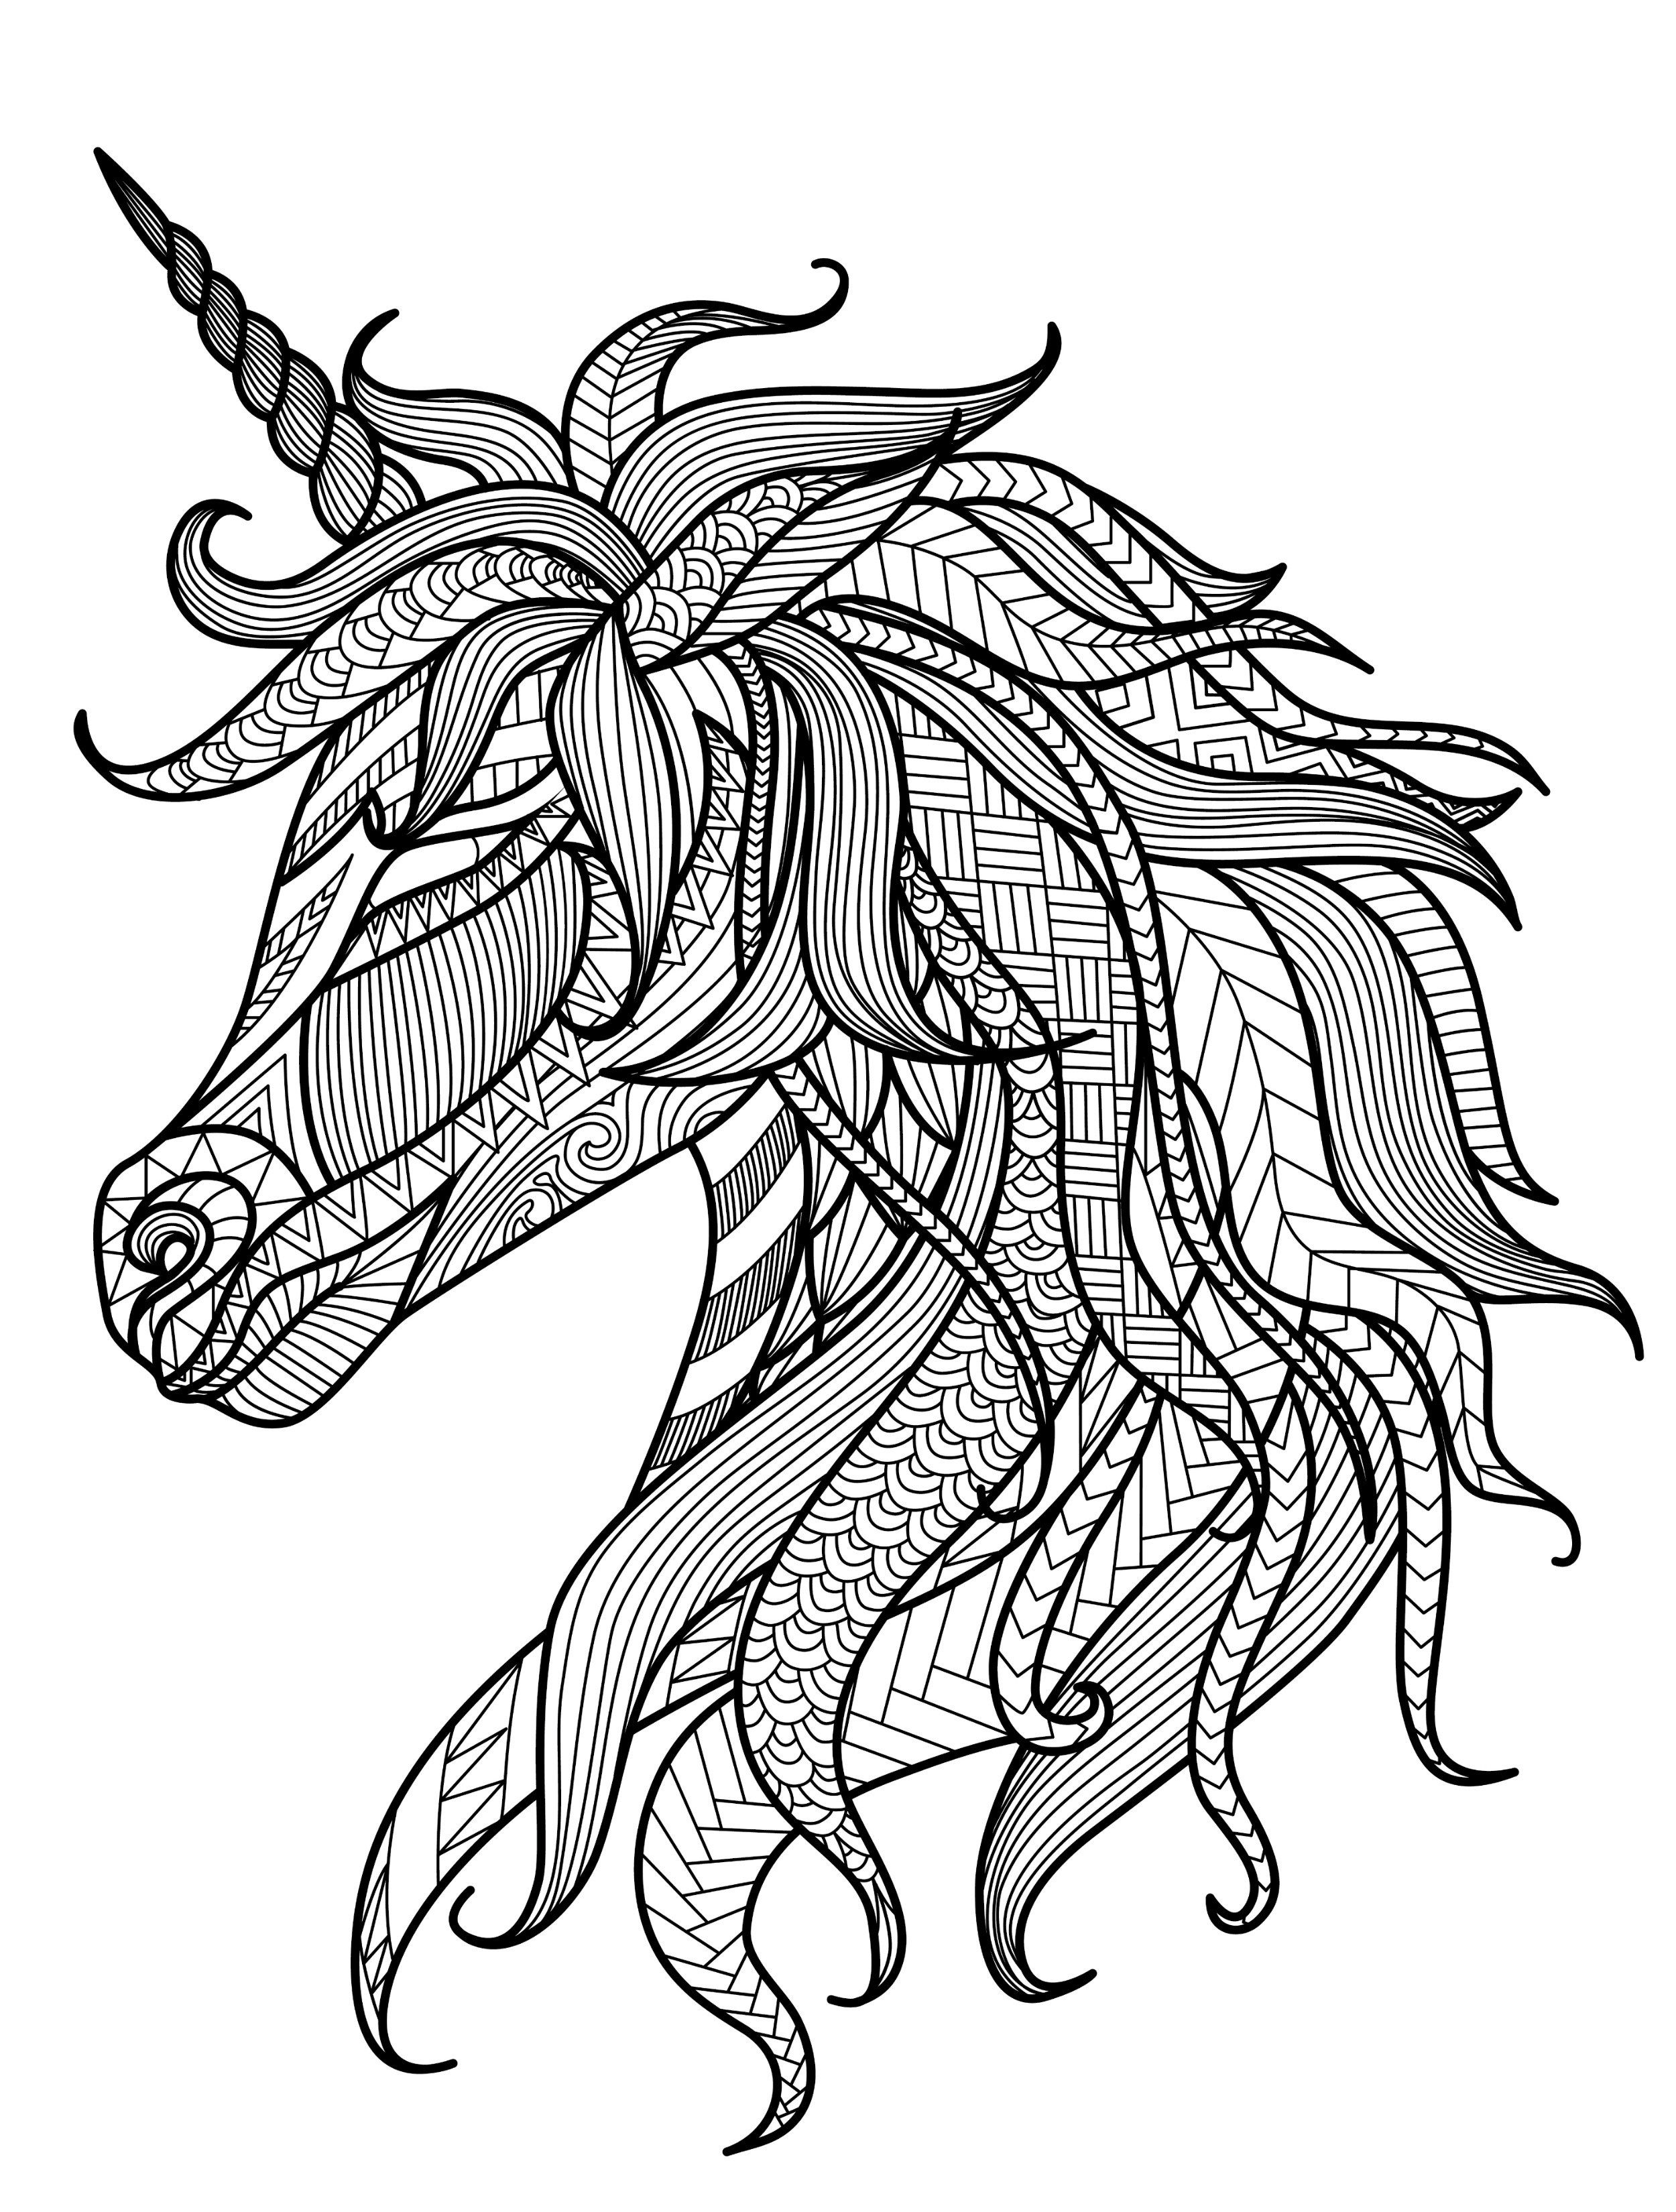 Unicorn Adult Coloring Page Free Downloadable Colouring For